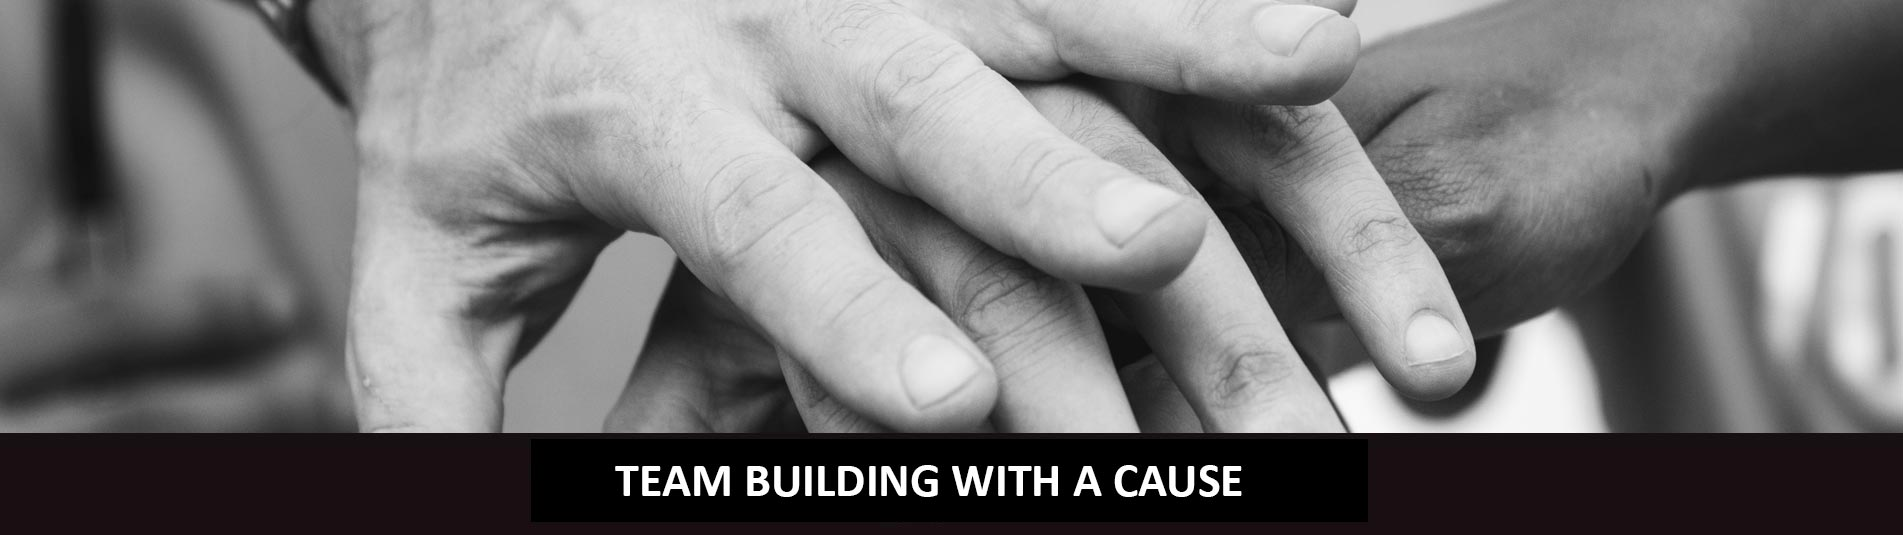 team building with a cause english